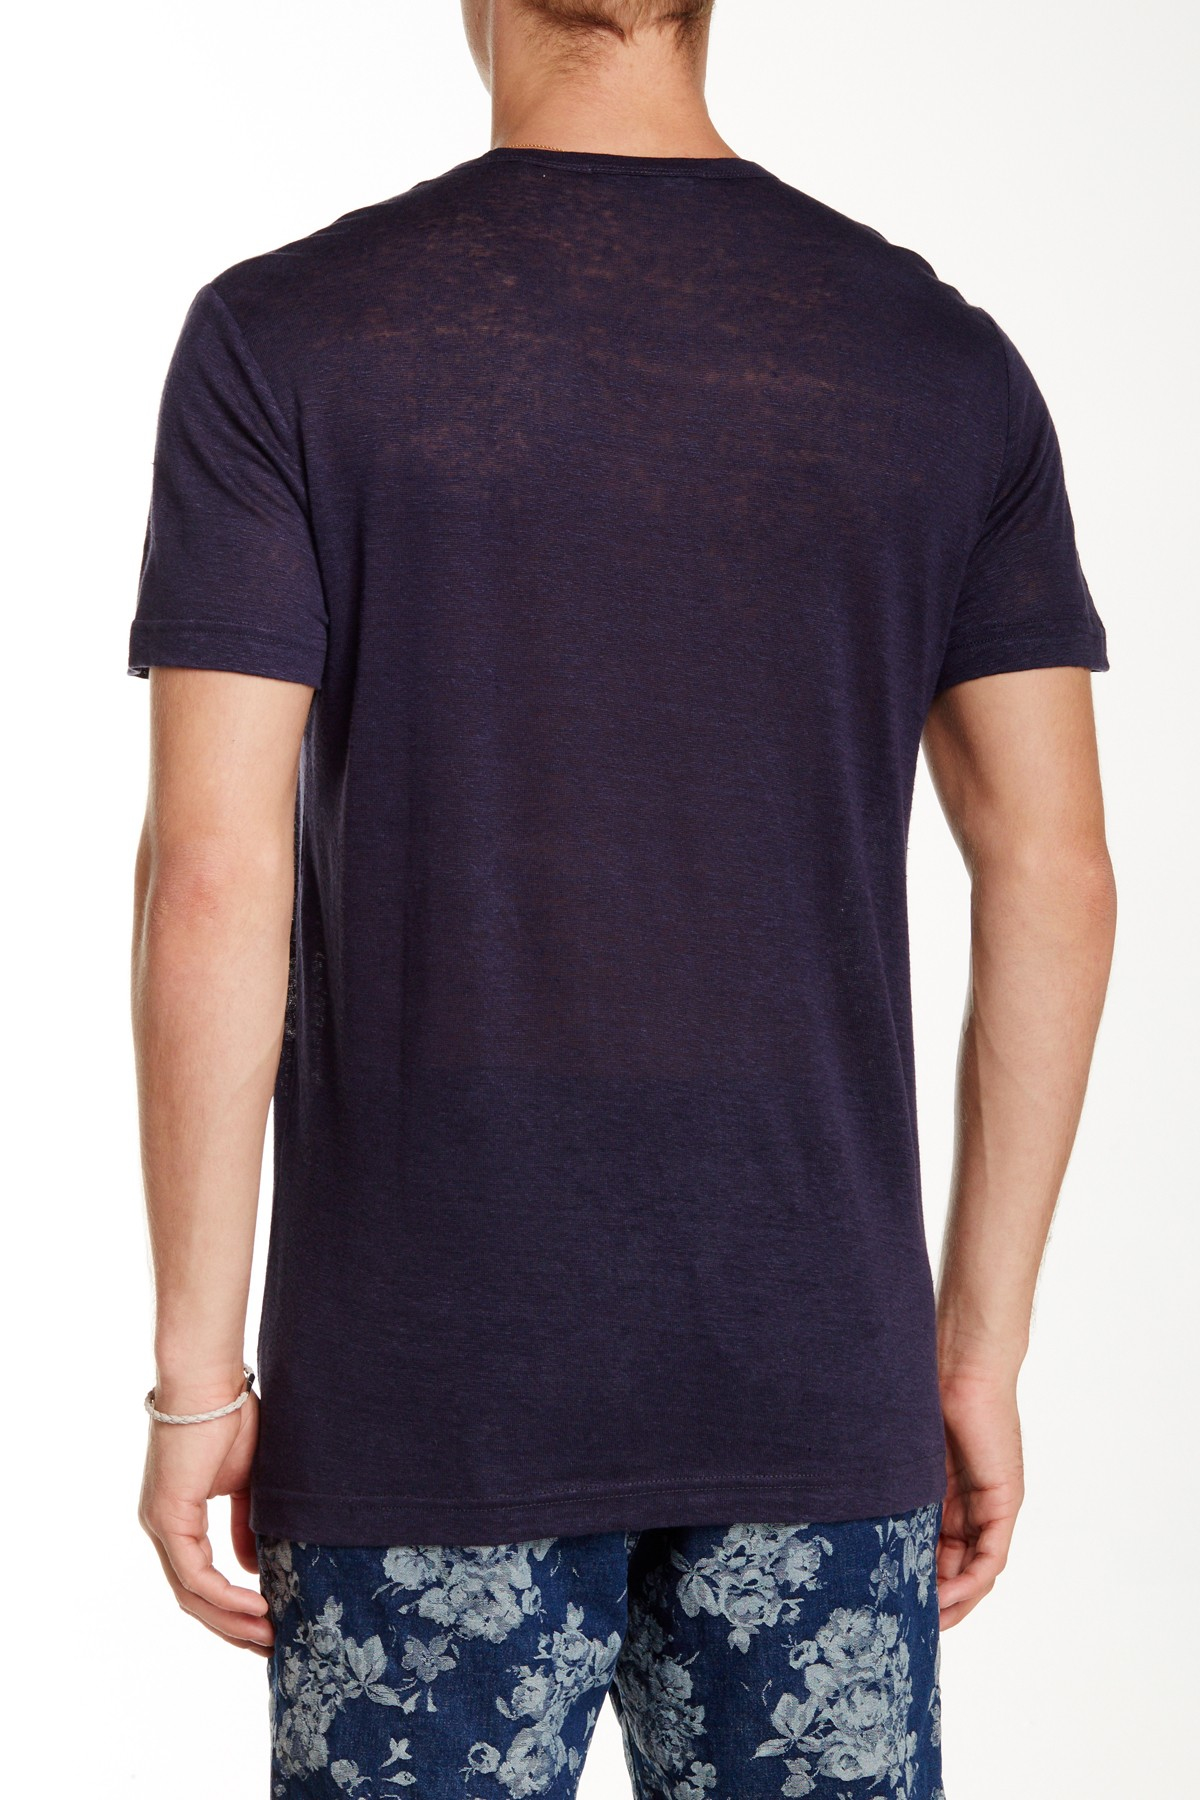 Slate And Stone Clothing : Lyst slate stone linen crew neck tee in blue for men